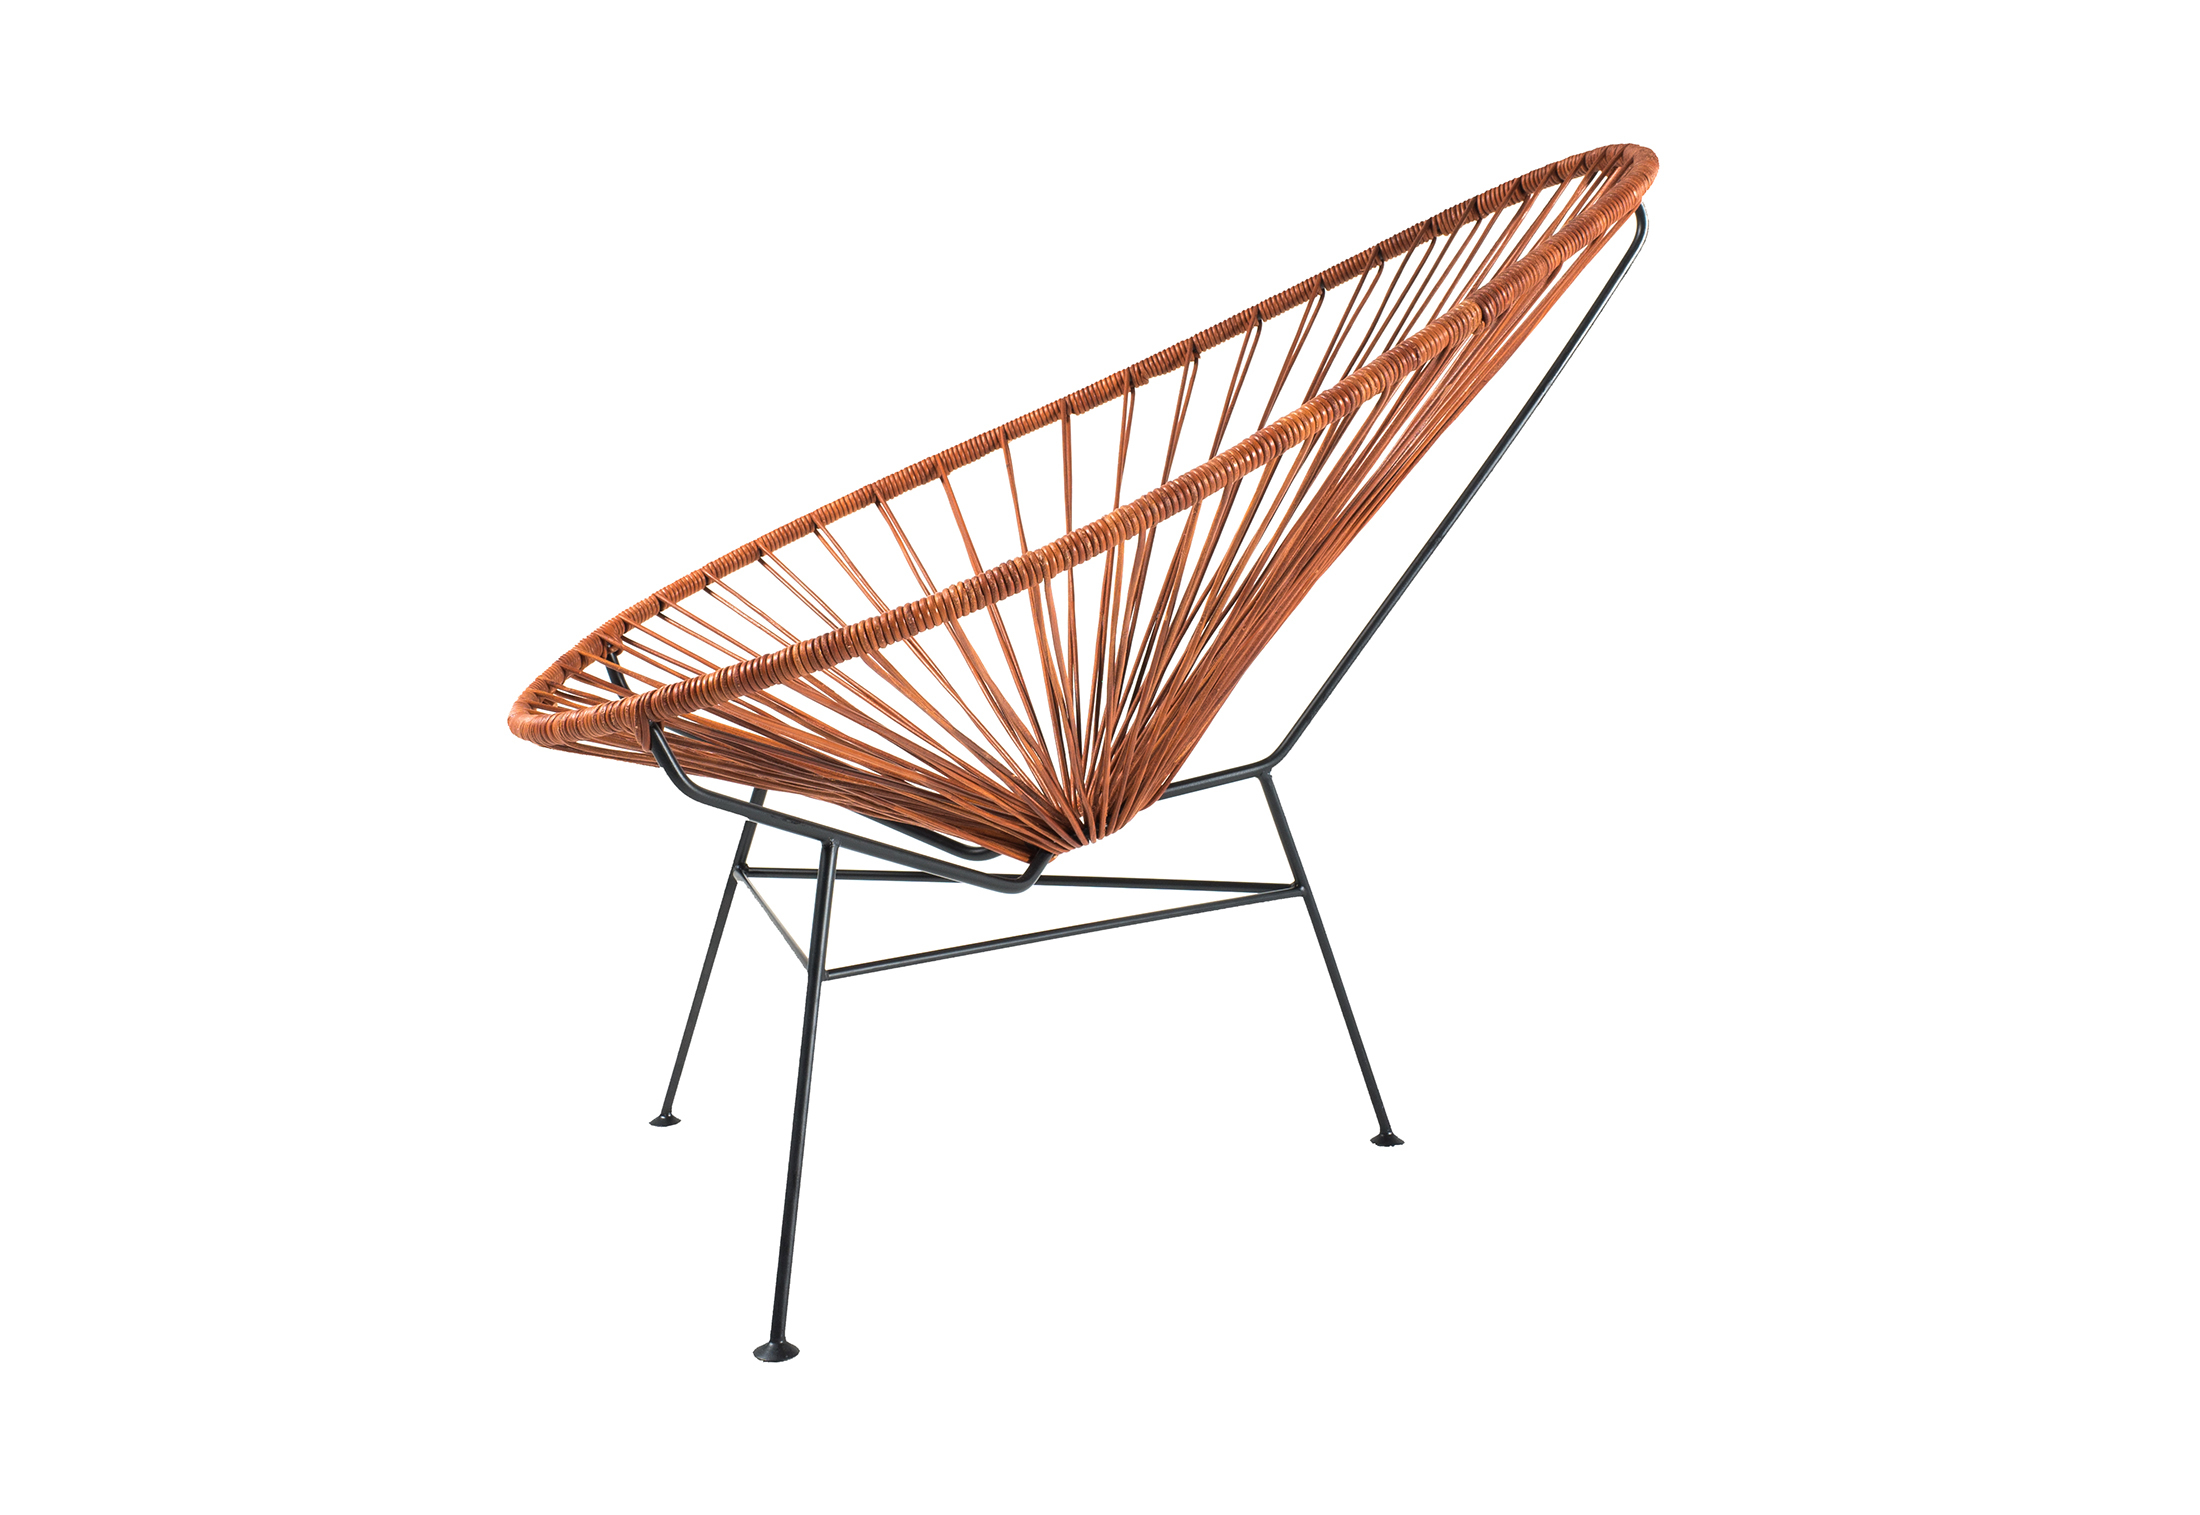 Outstanding Acapulco Chair Leather Cognac By Acapulco Design Stylepark Caraccident5 Cool Chair Designs And Ideas Caraccident5Info